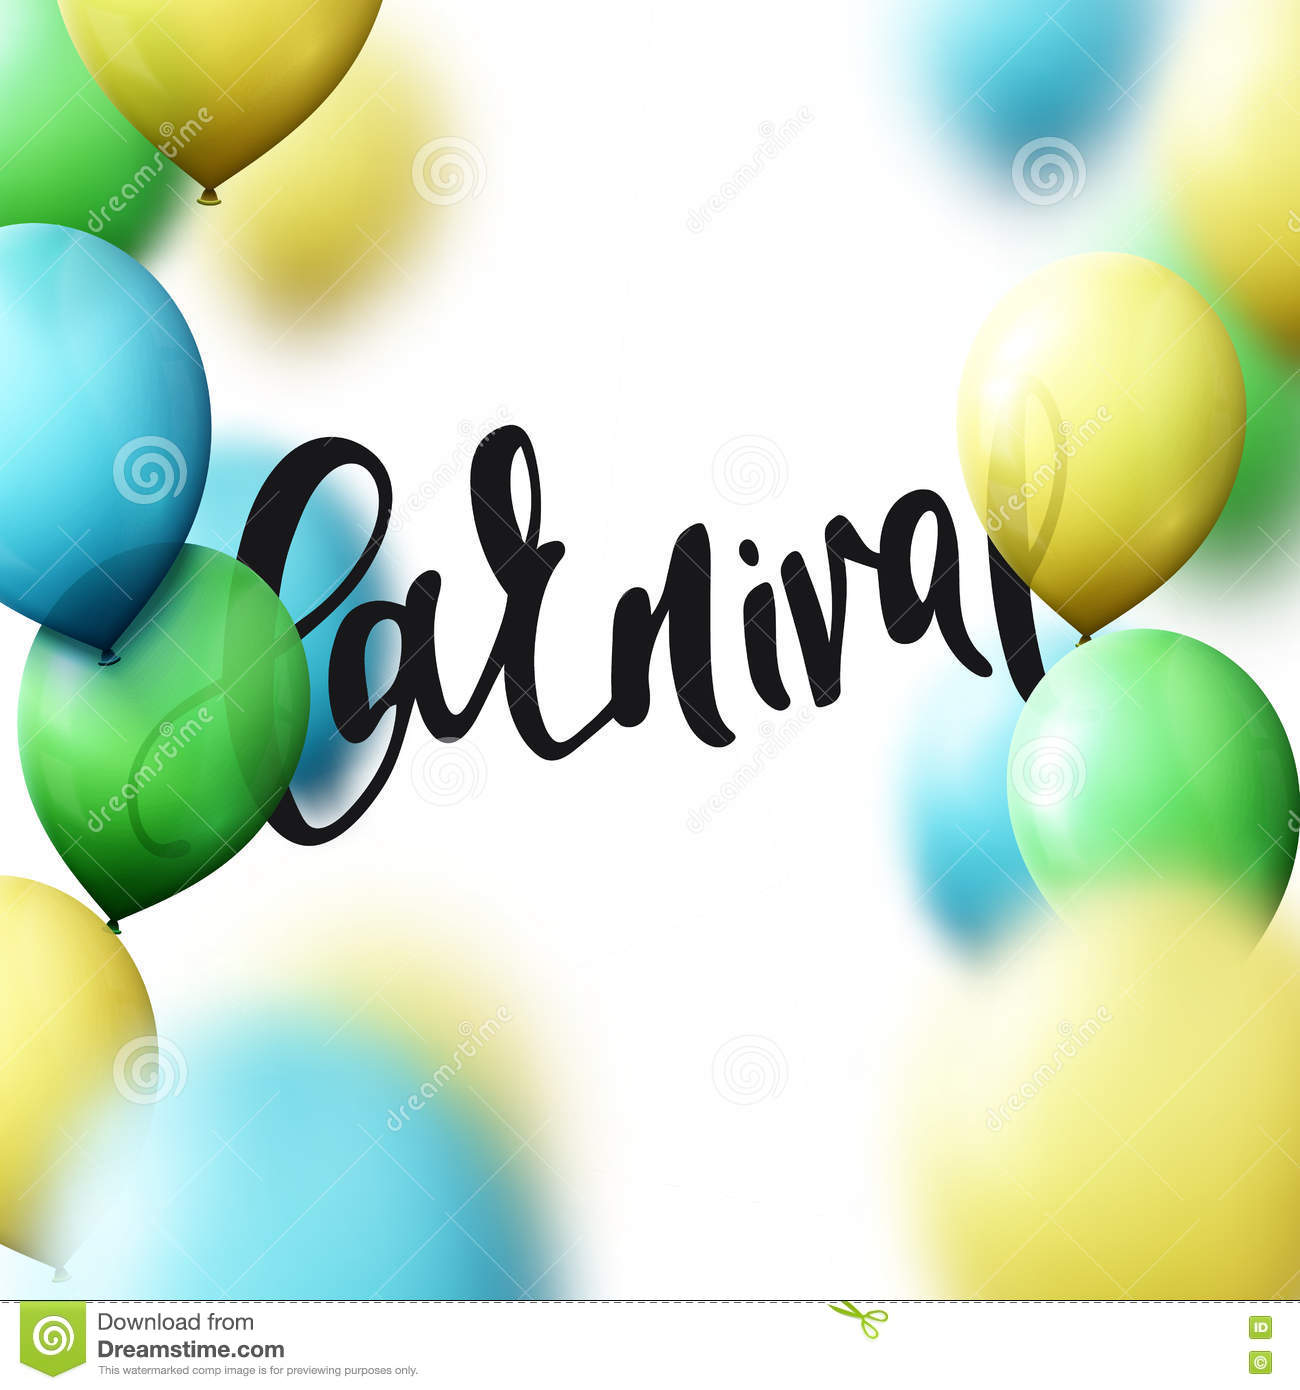 Handmade watercolor brazil flag brasil stock photos freeimages com - Inscription Carnival Background With Balloons Colors Of Brazilian Flag Royalty Free Stock Photos